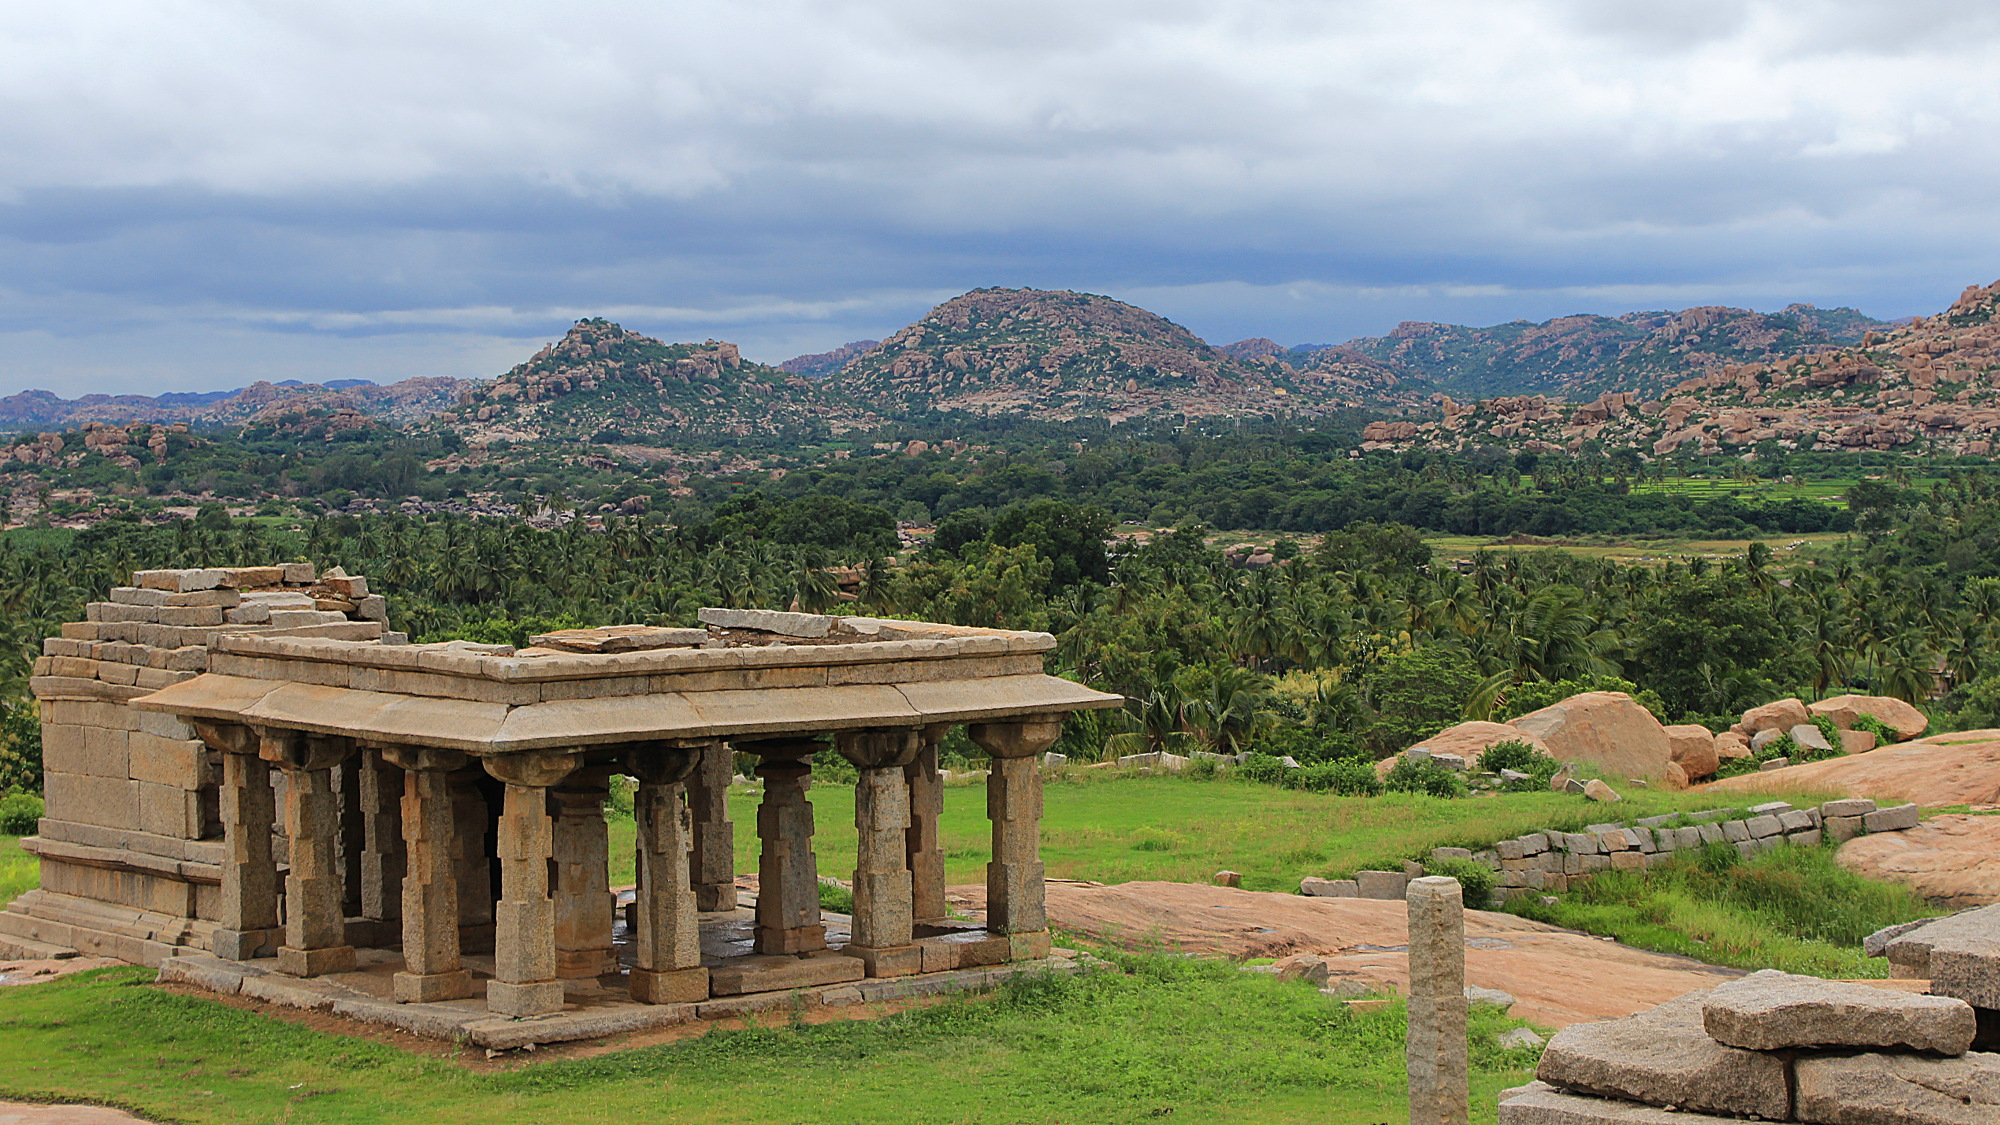 The ruins of Hampi are remnants of Vijayanagara, the capital of the historic Vijayanagara Empire. Here's a view from one hill to the nature around the town.